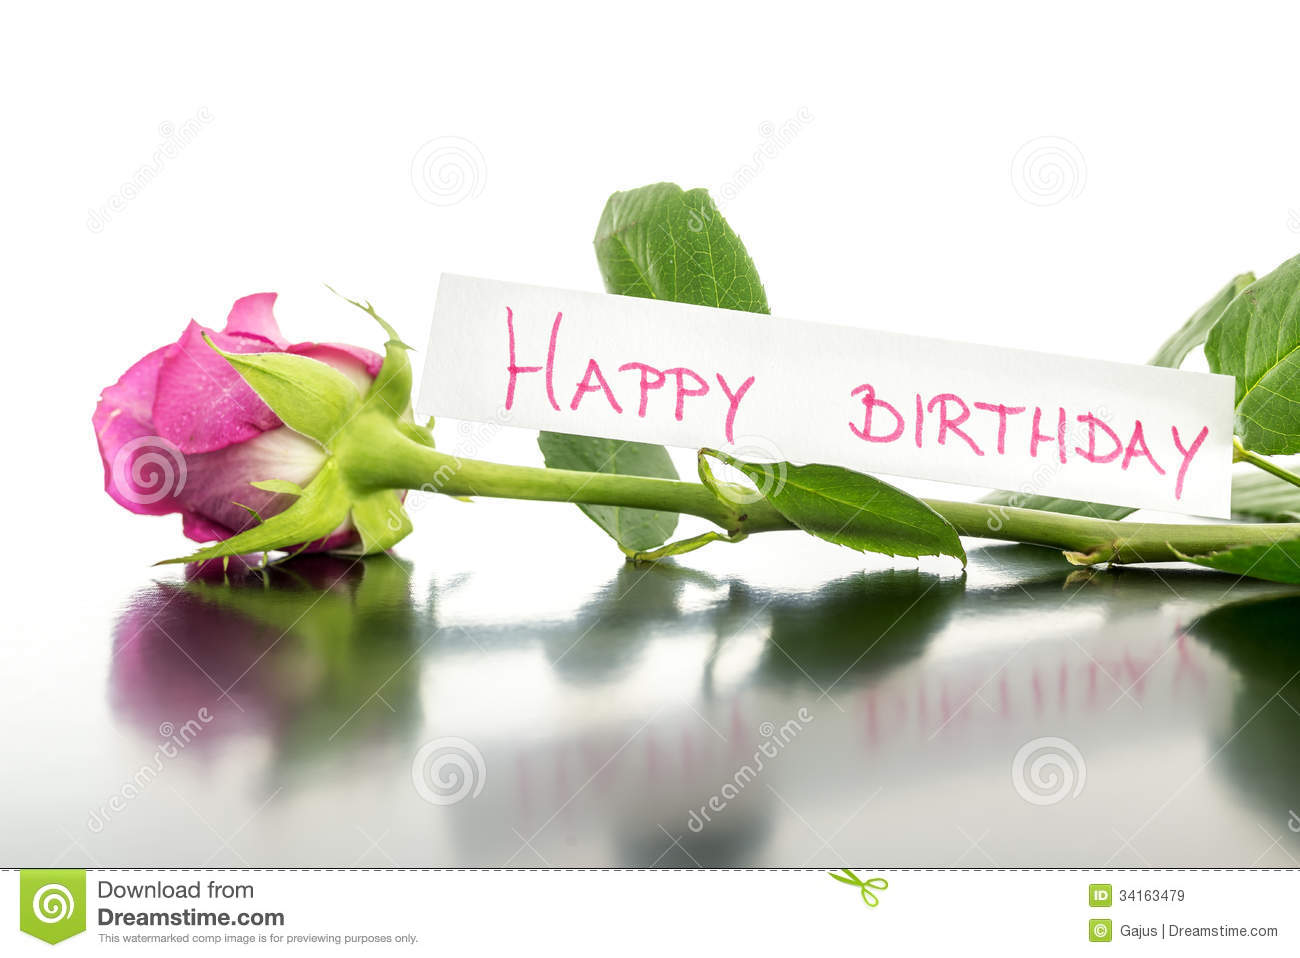 Happy birthday flower stock image image of celebration 34163479 happy birthday flower izmirmasajfo Image collections